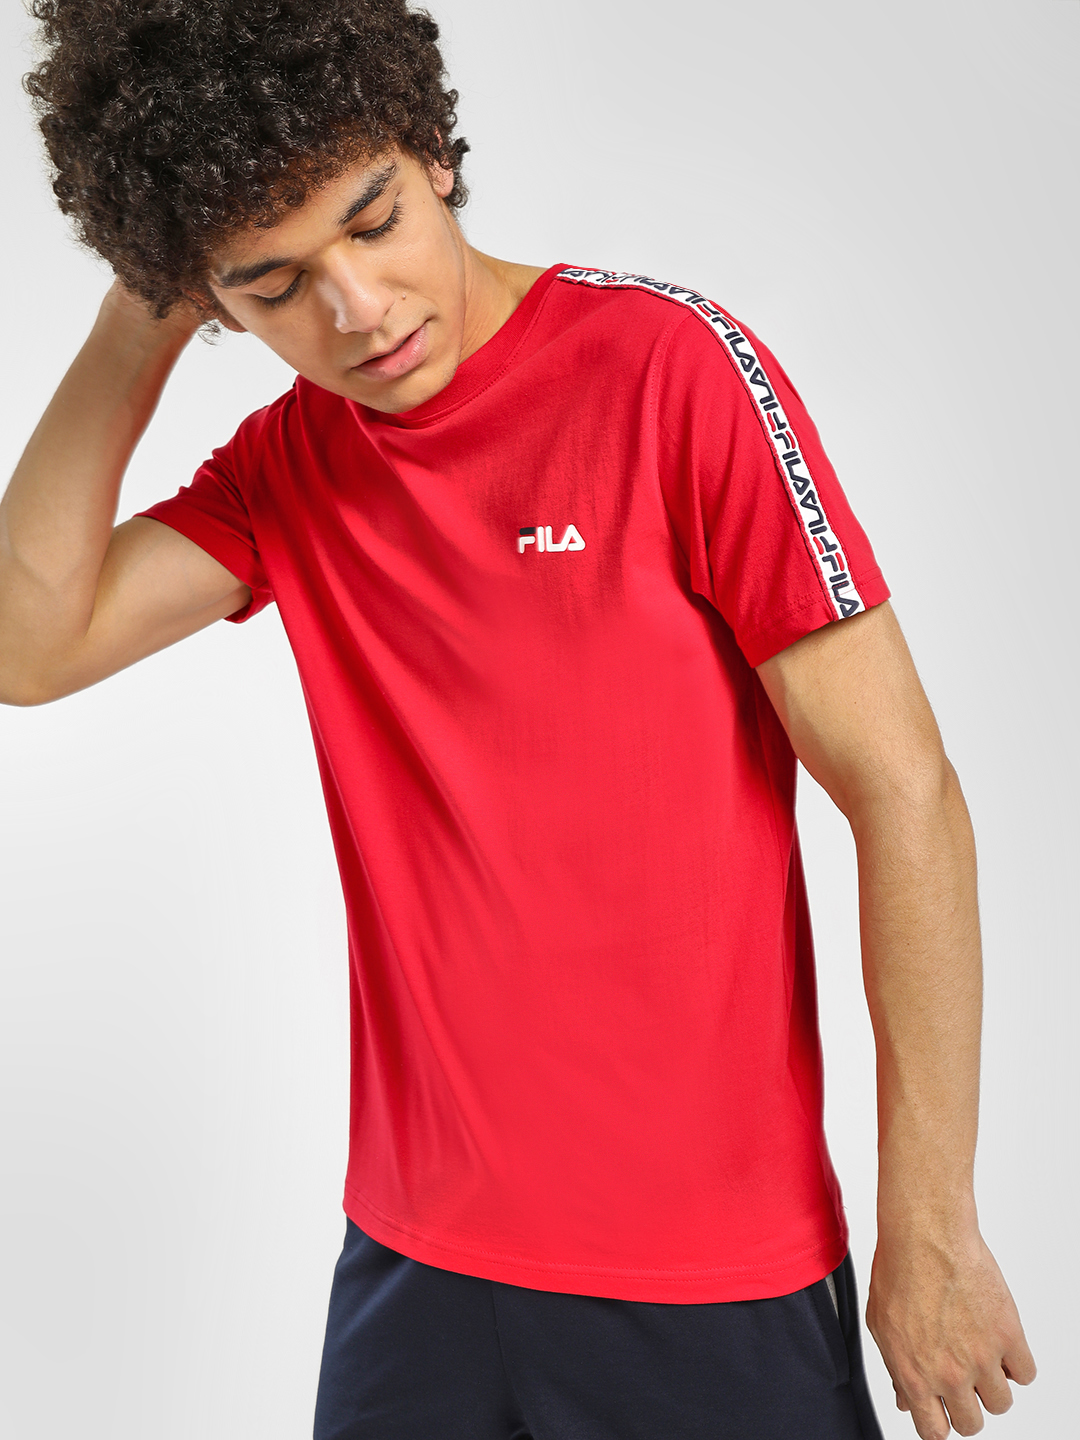 Fila Red Slogan Tape T-Shirt 1